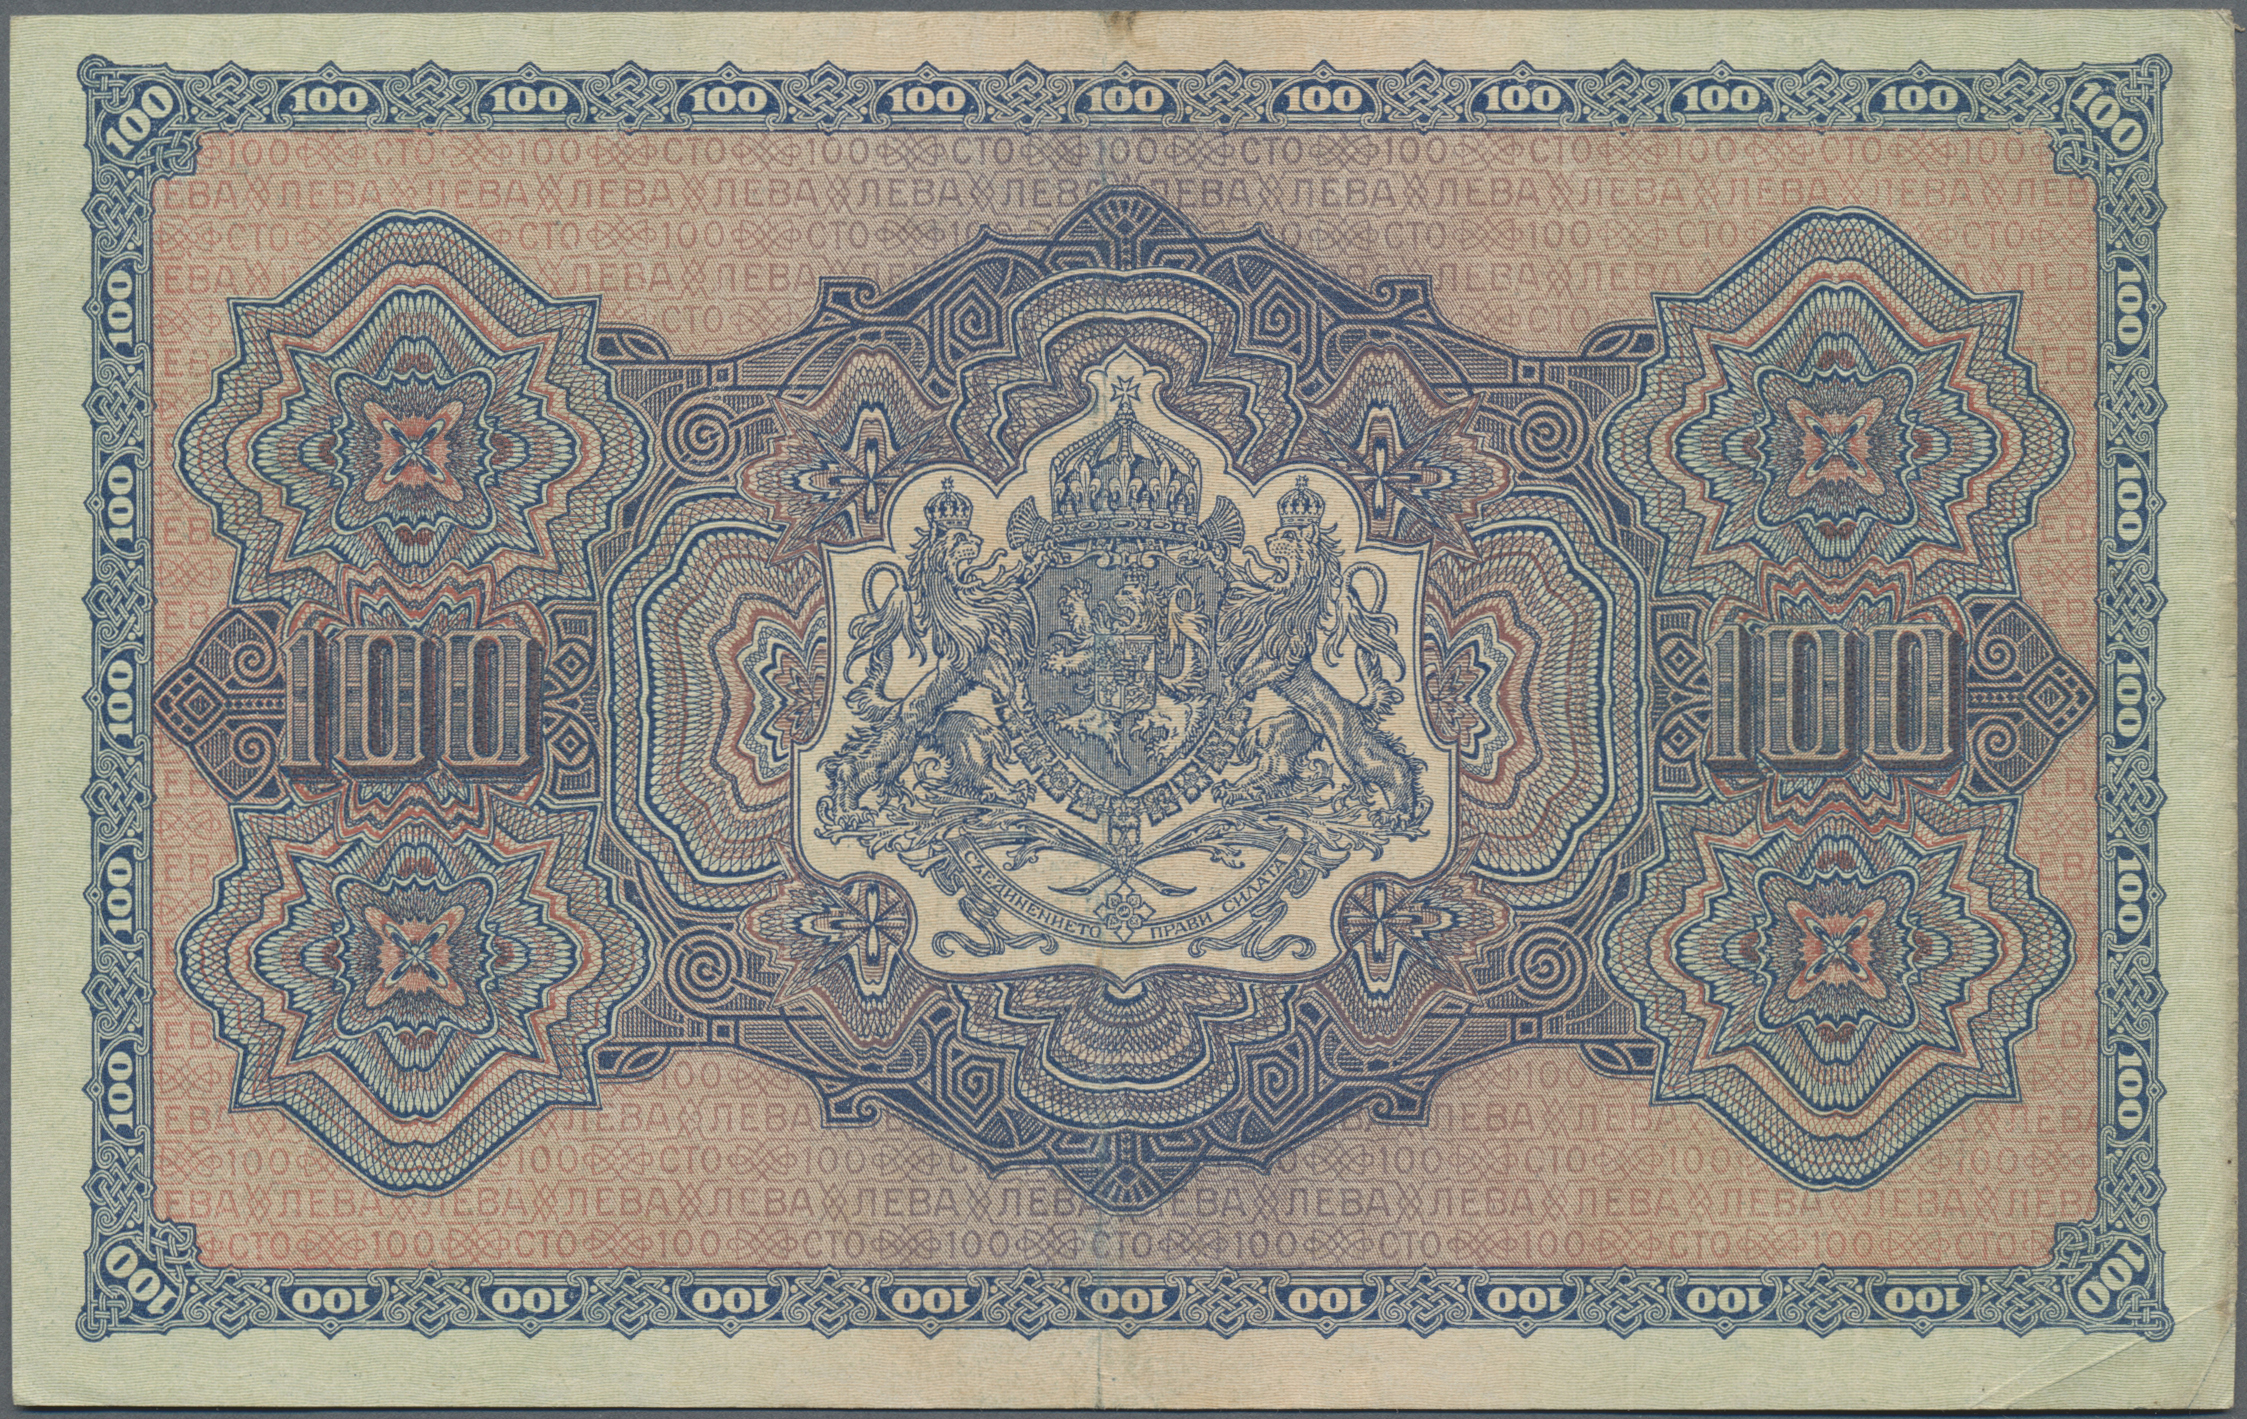 Lot 00217 - Bulgaria / Bulgarien | Banknoten  -  Auktionshaus Christoph Gärtner GmbH & Co. KG Sale #46 The Banknotes Worldwide section of the 46th Christoph Gärtner Auction